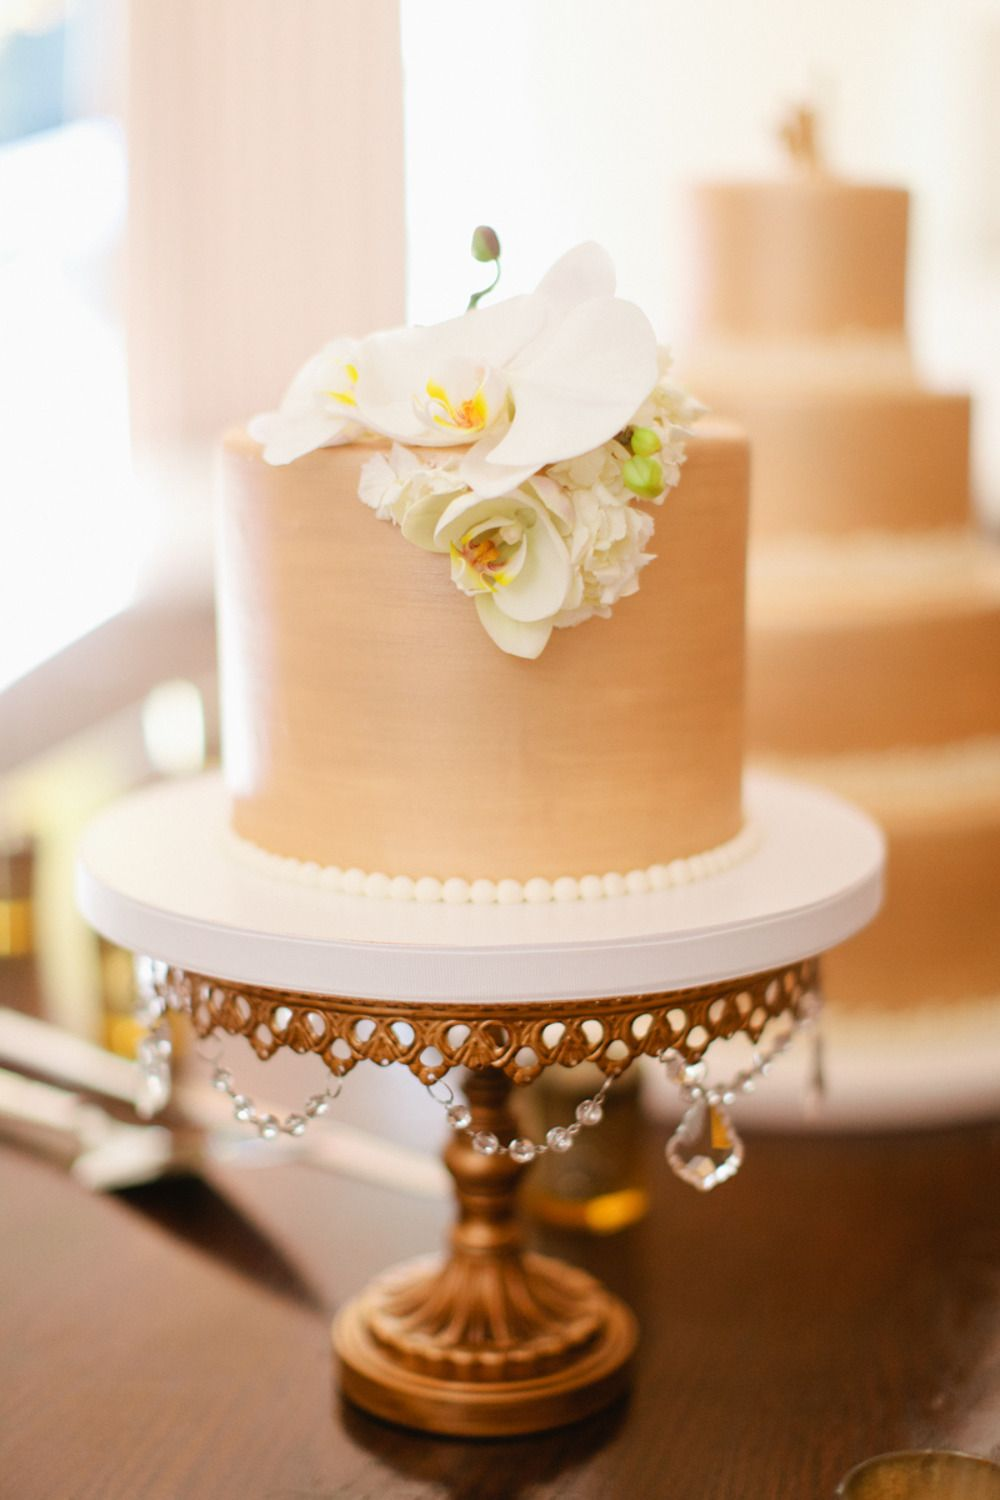 Cake: Perfect Endings | Marin Kristine Photography